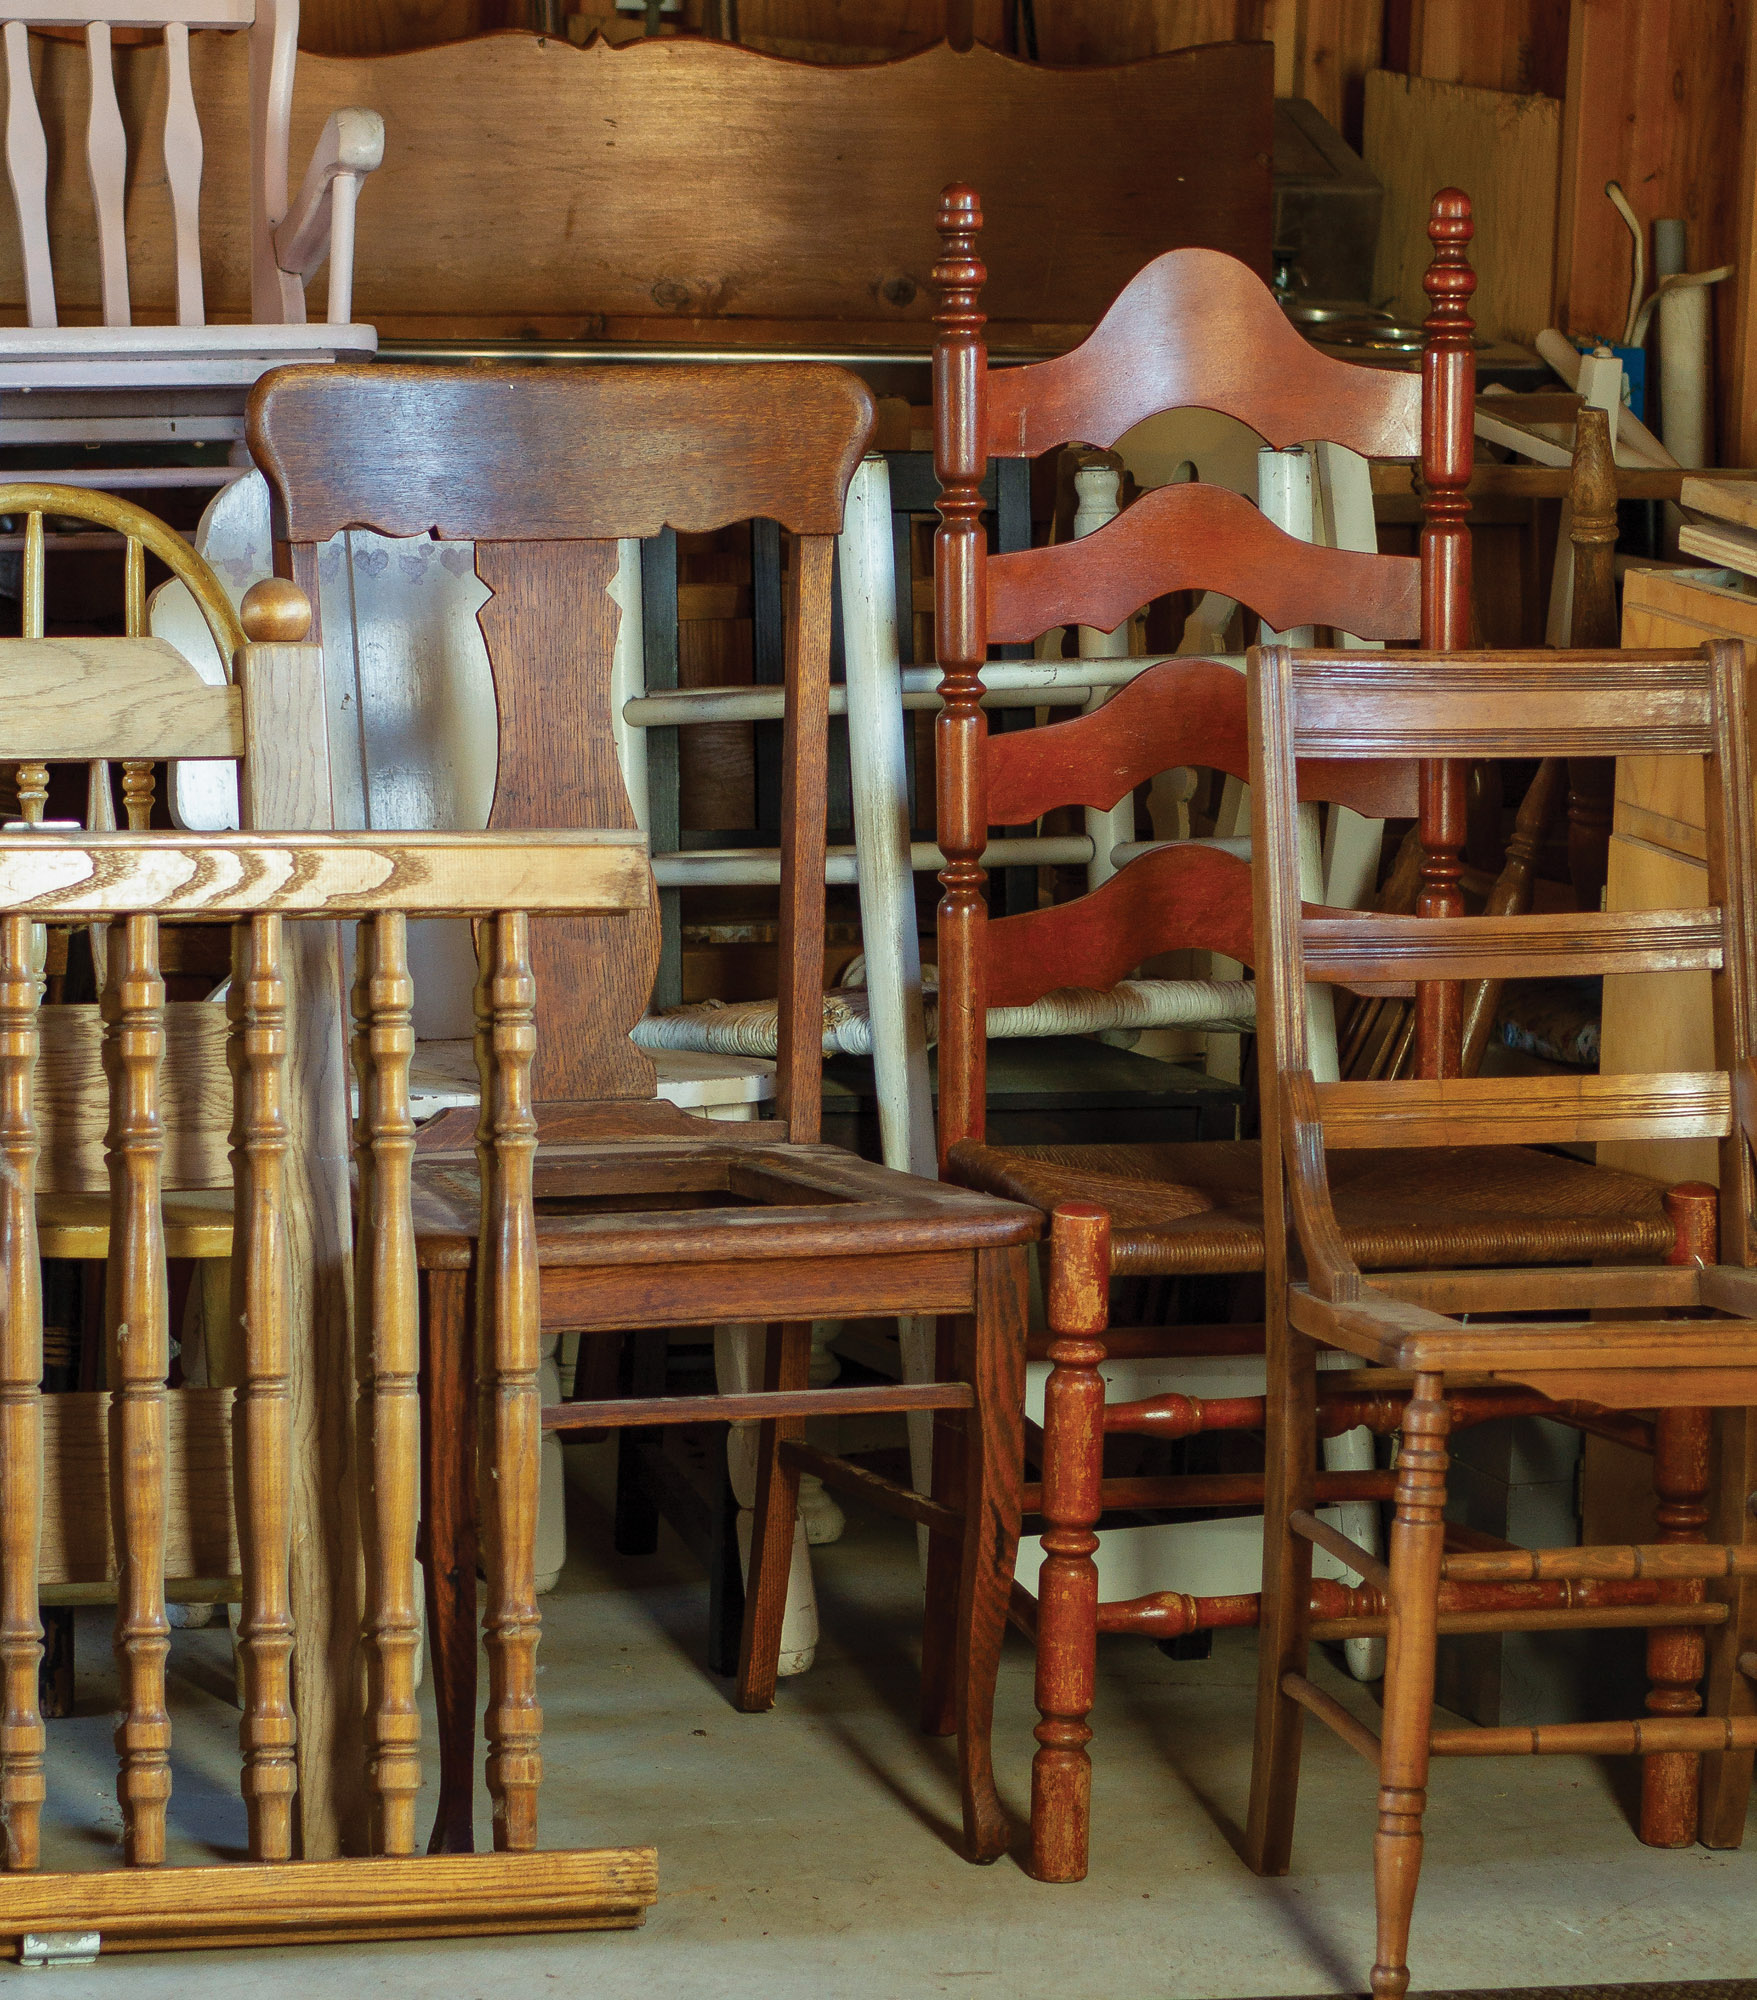 A collection of old chairs.